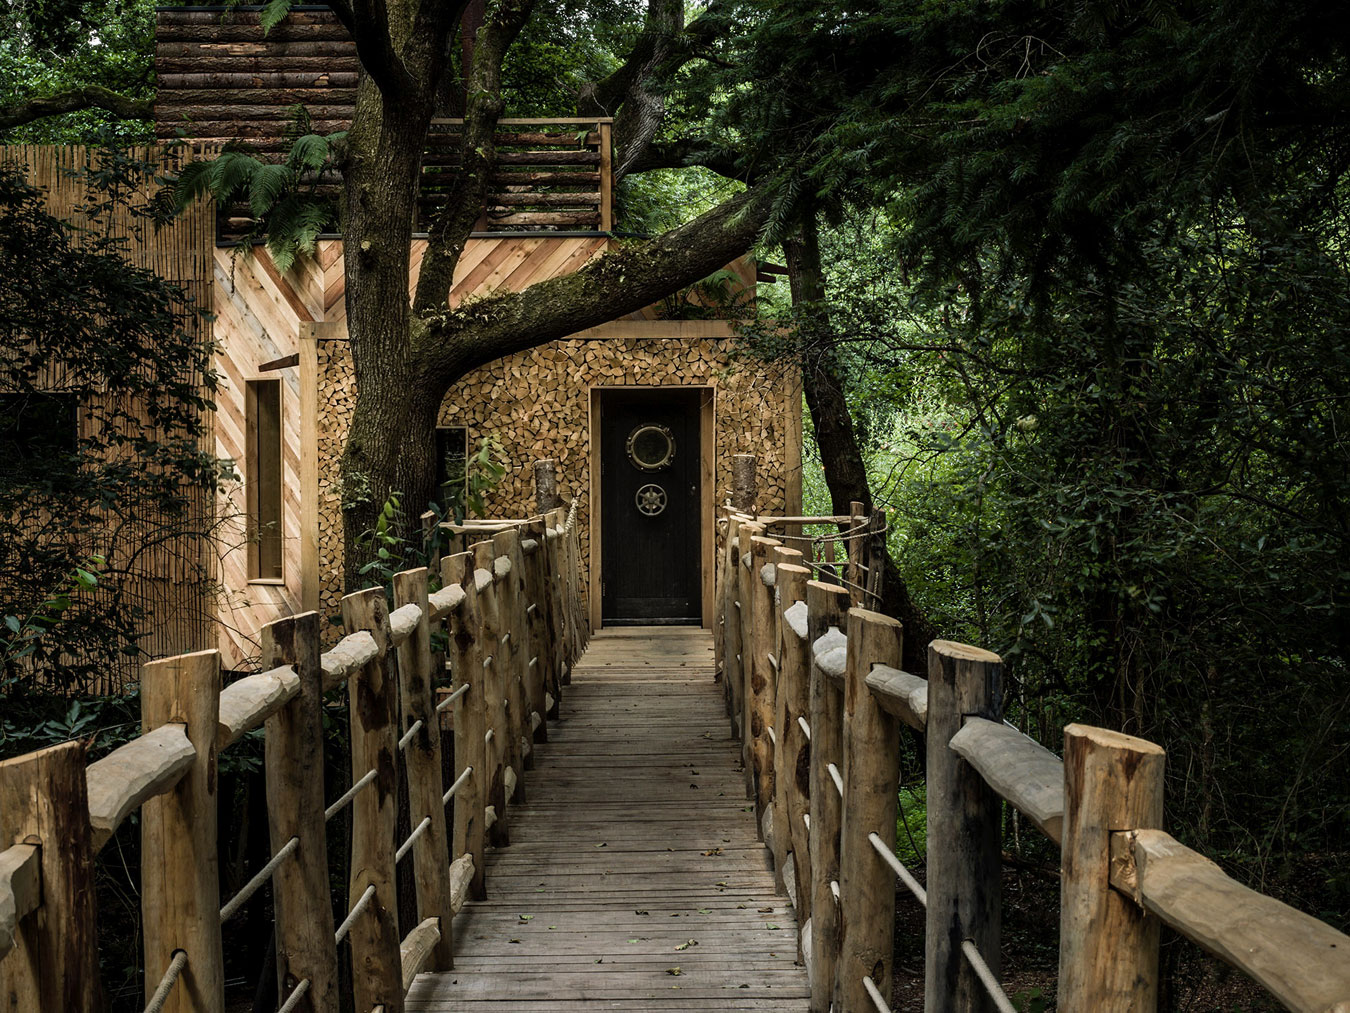 Tree house entrance